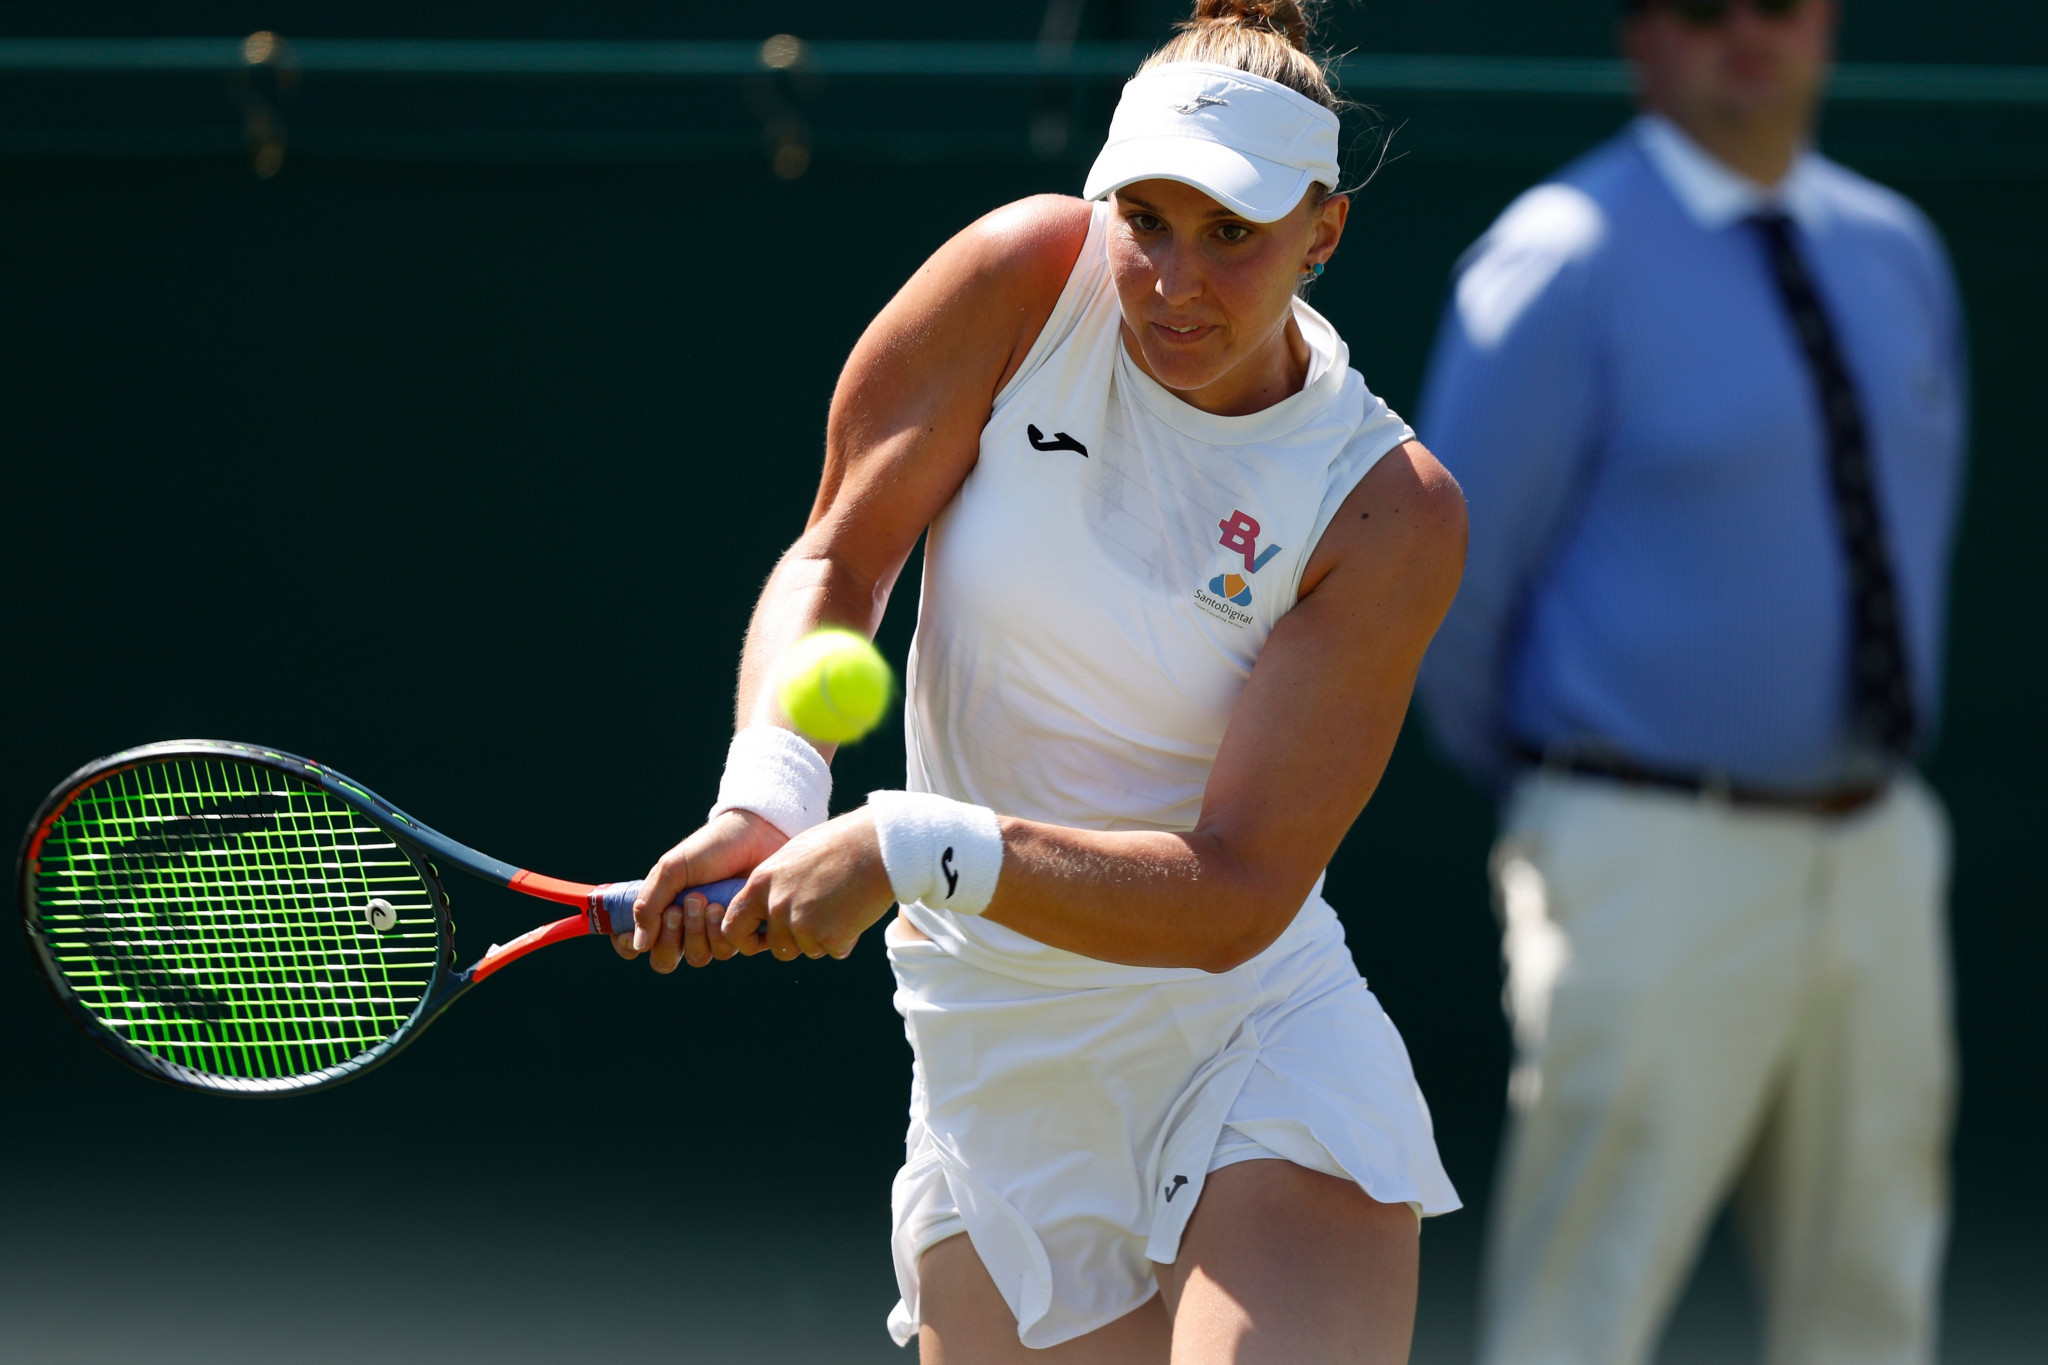 Wimbledon giant-killer Haddad Maia provisionally suspended by ITF after failing drugs test